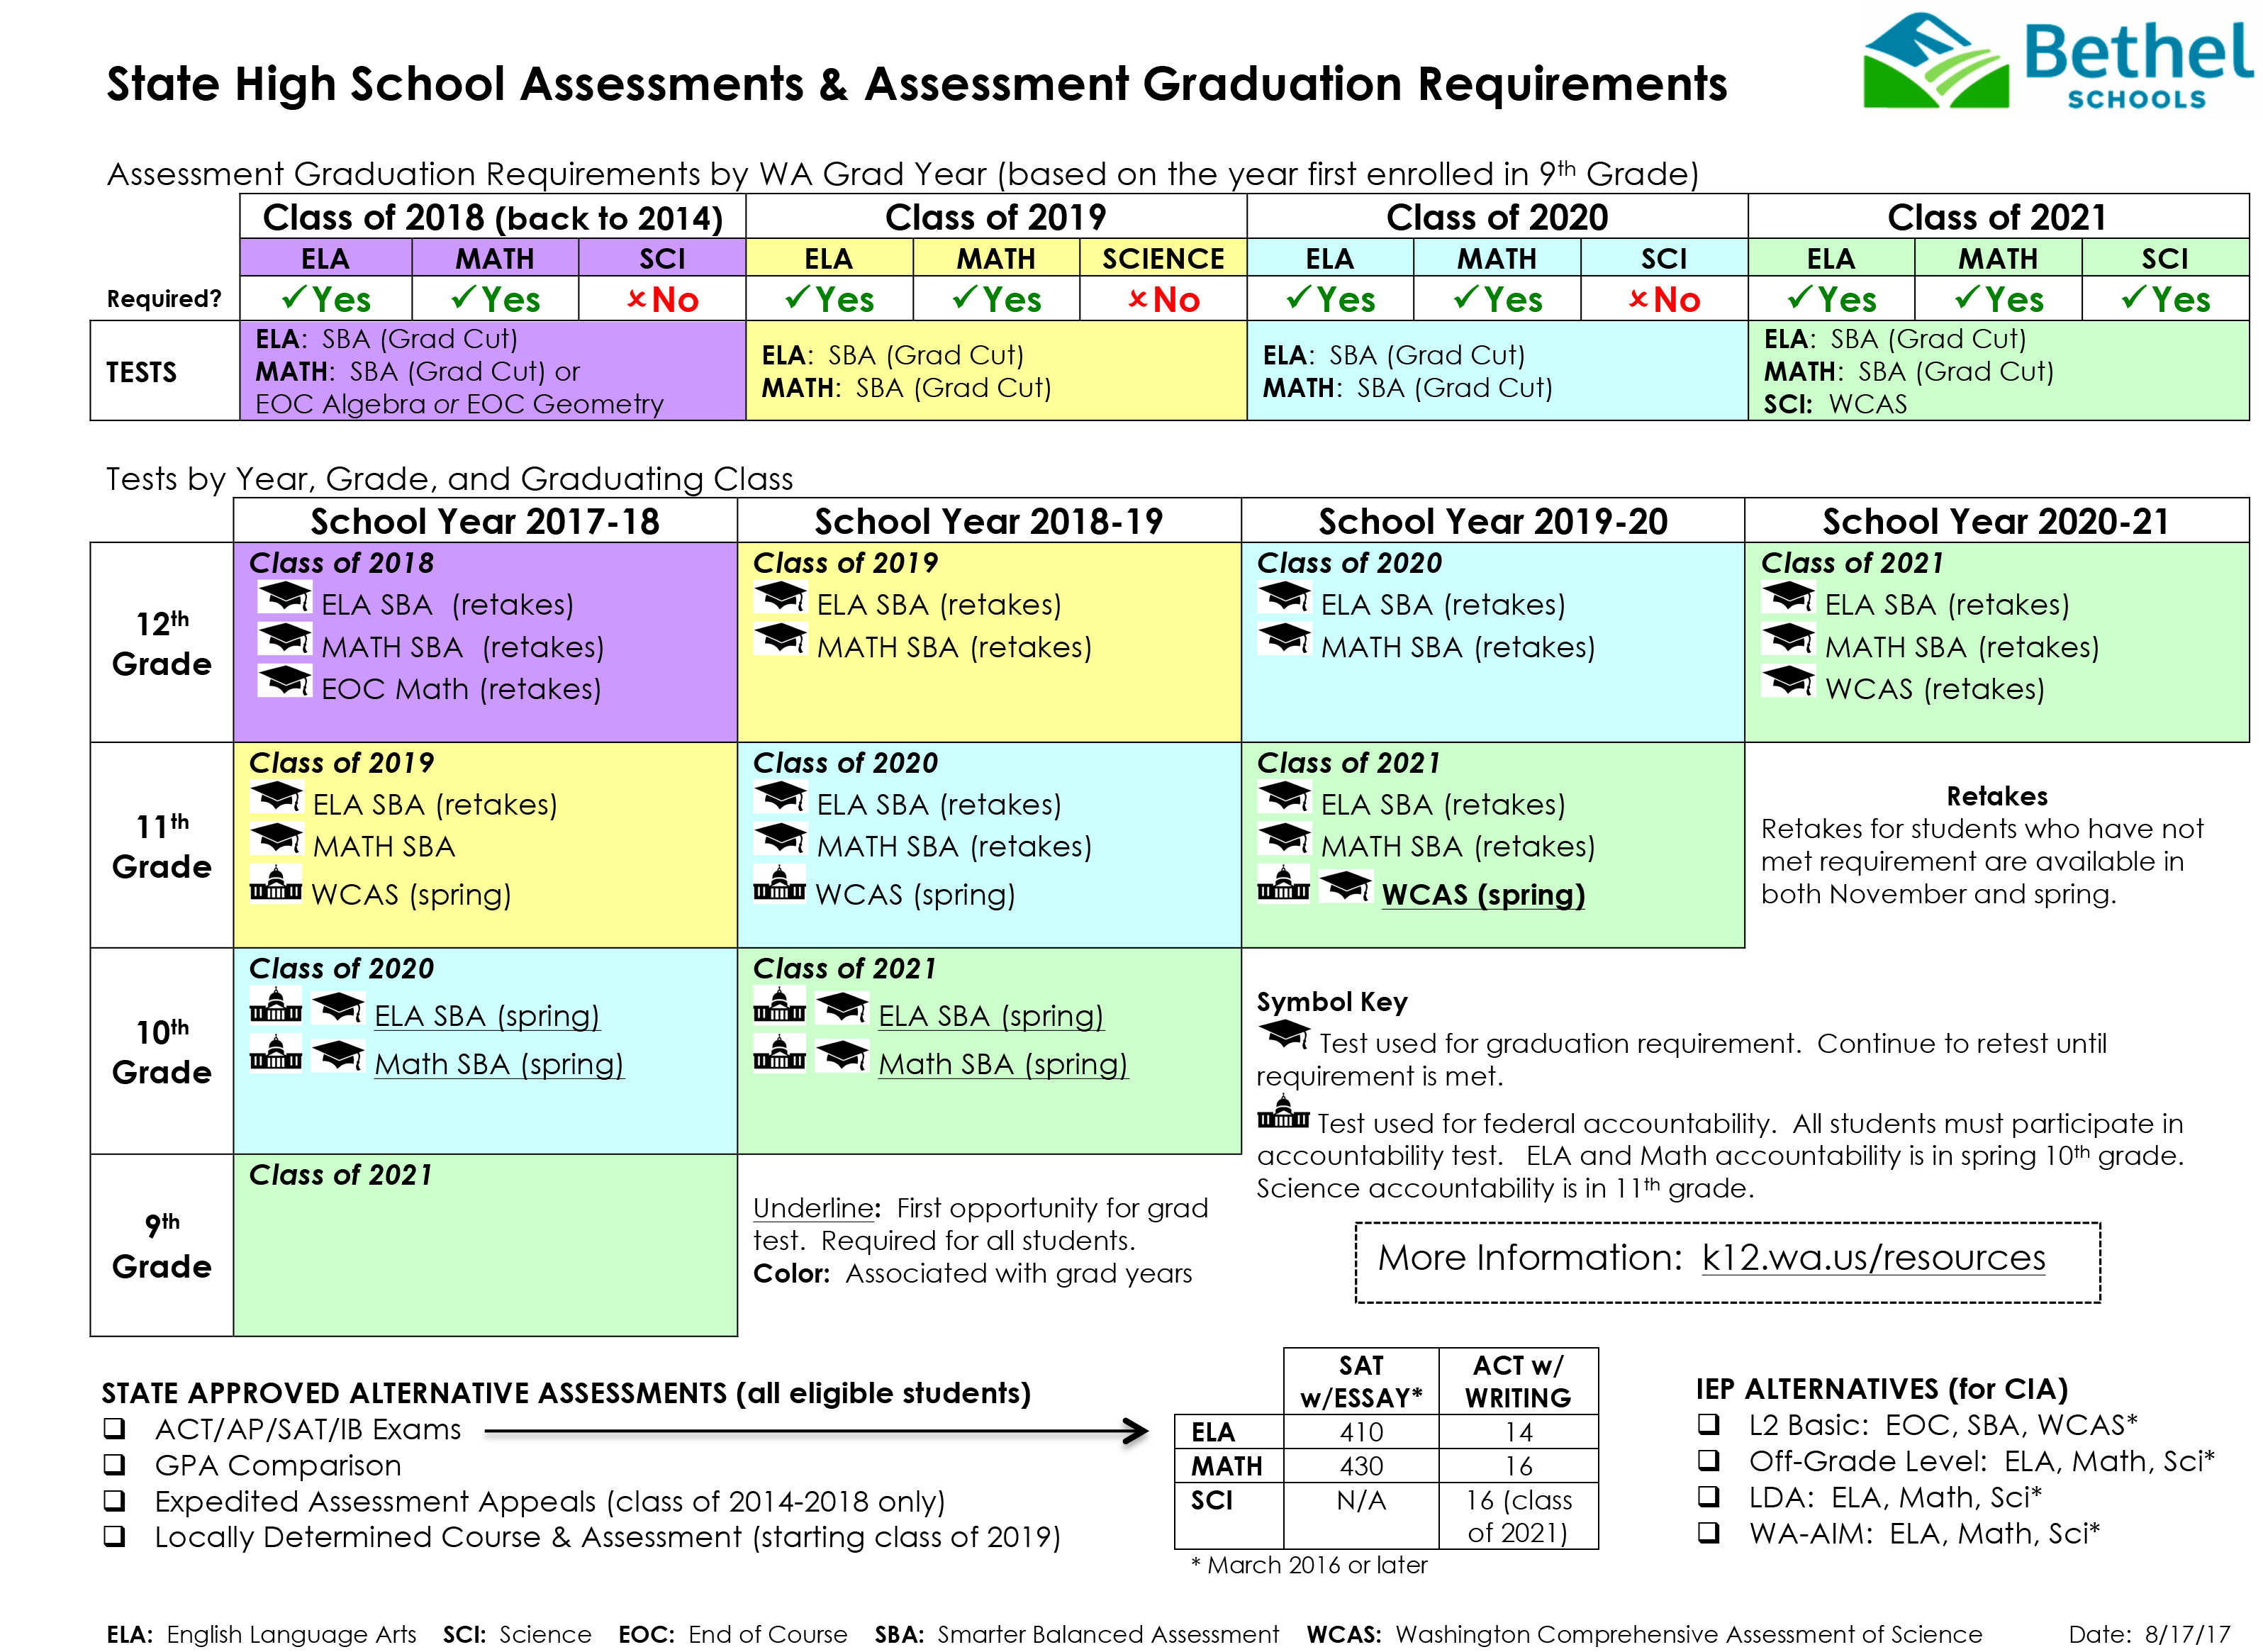 State High School Assessments & Assessment Graduation Requirements